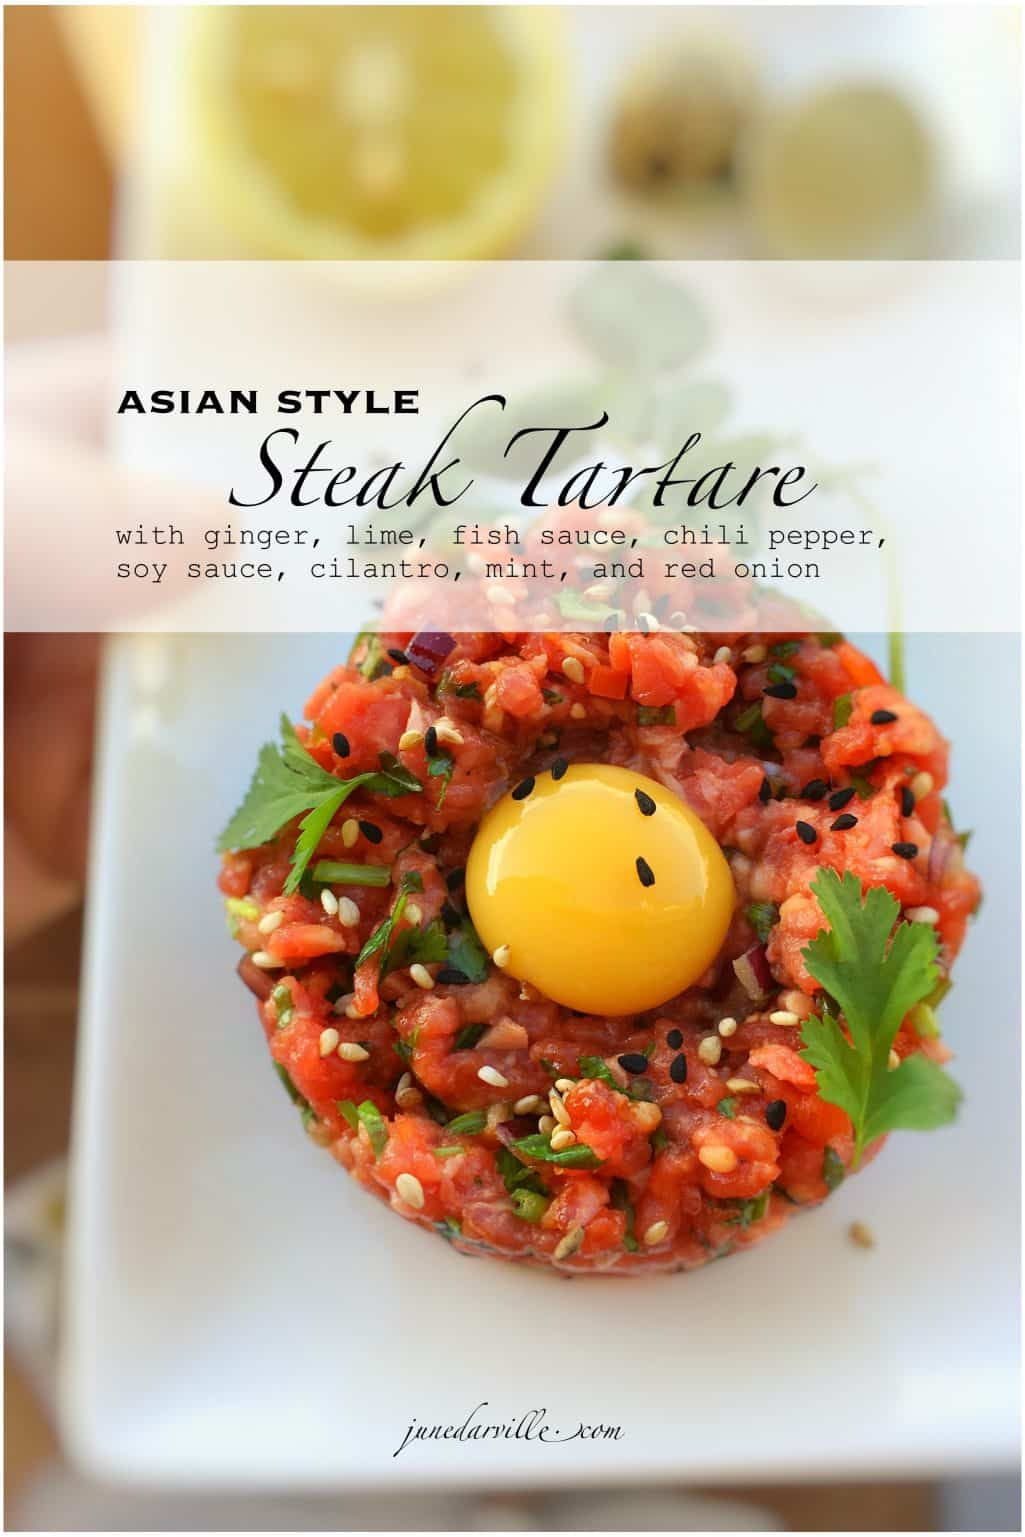 Classic dishes meets fusion cuisine: here's a colorful Asian style steak tartare, what a flavor bomb! Easy to make ahead, the perfect starter!